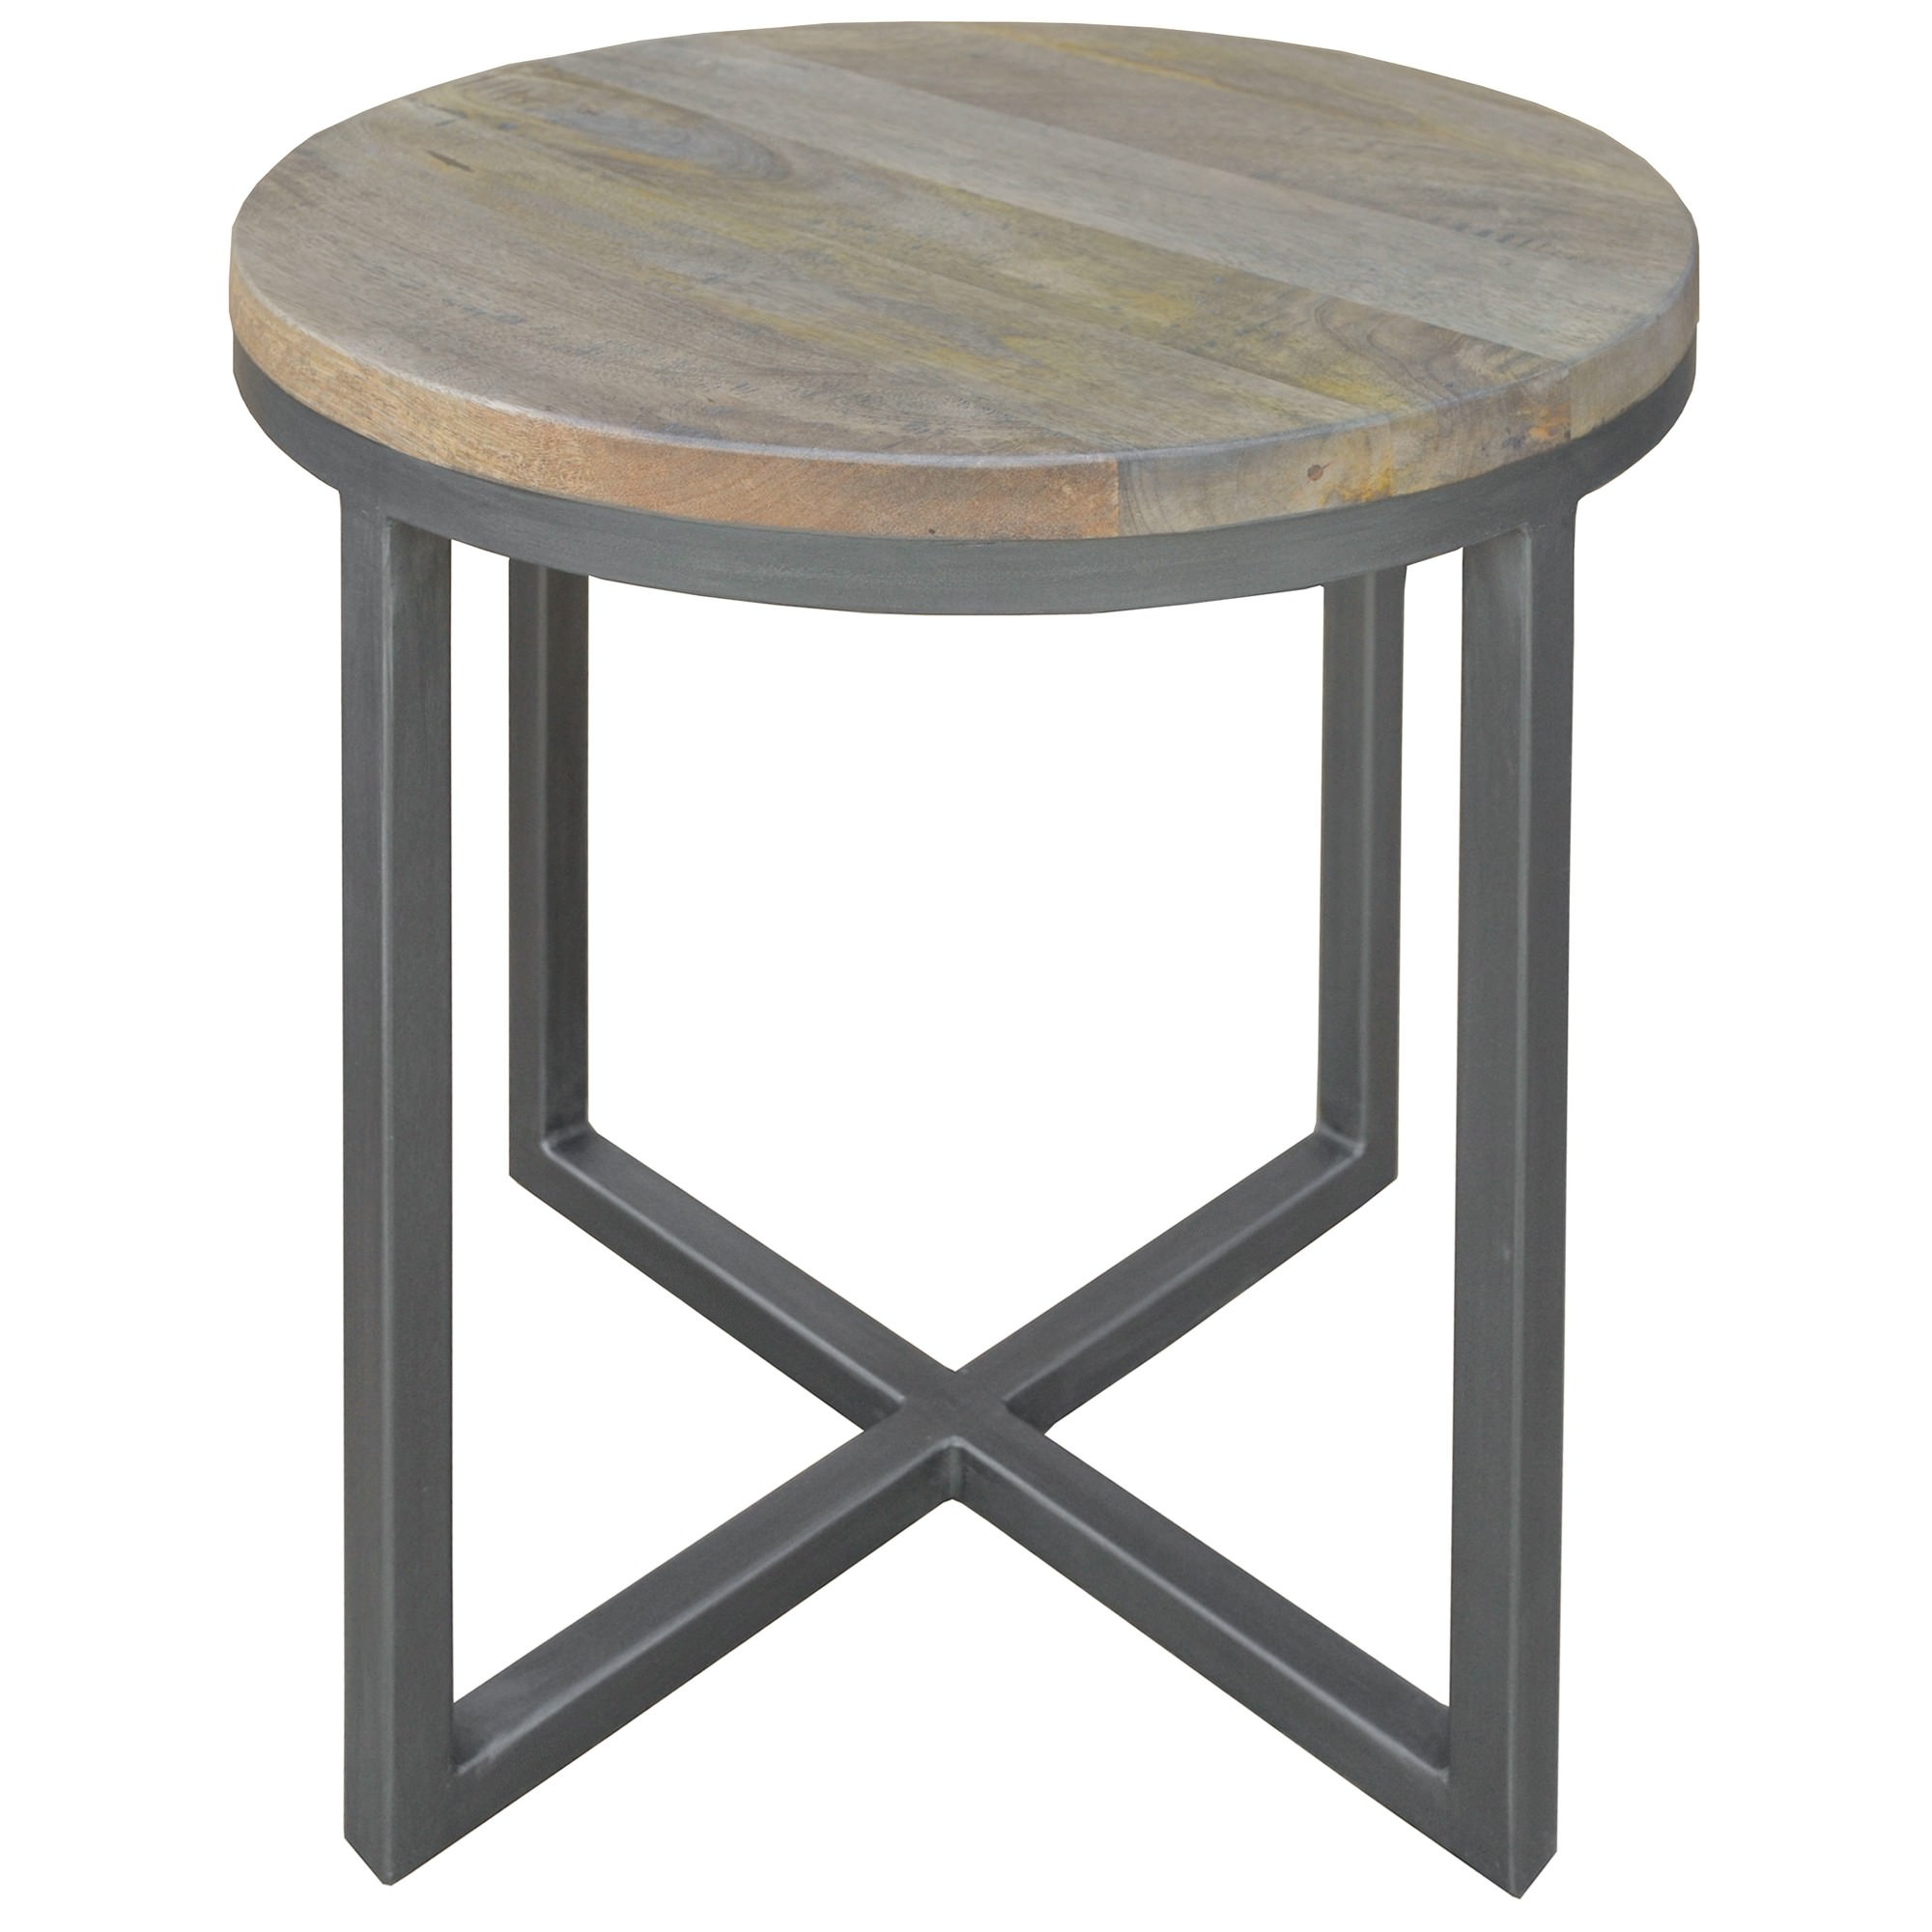 Byrne Mango Wood & Metal Round Side Table